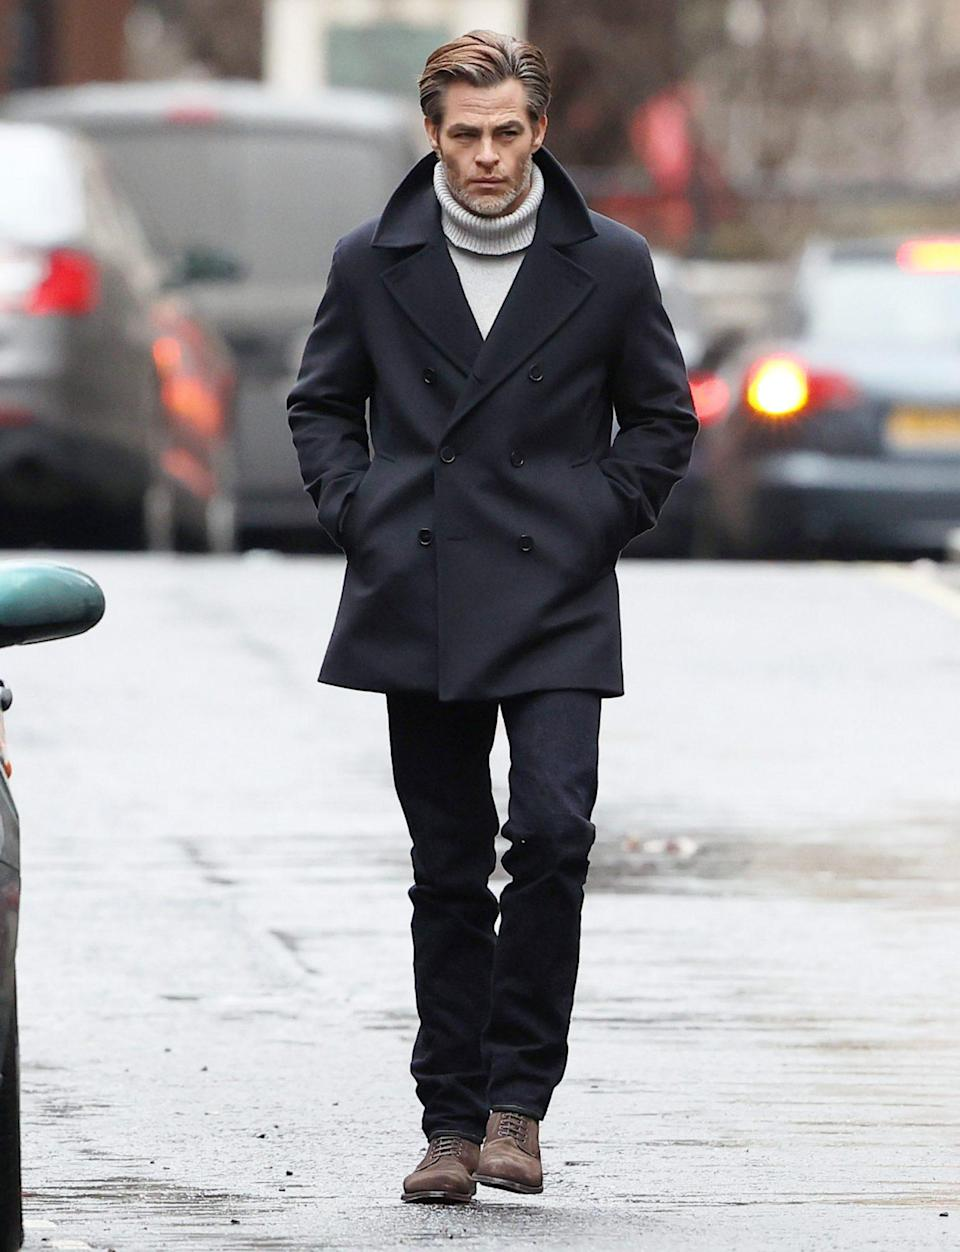 <p>Chris Pine films <em>All the Old Knives </em>in London on Monday, bundled up in a turtleneck sweater and peacoat. </p>